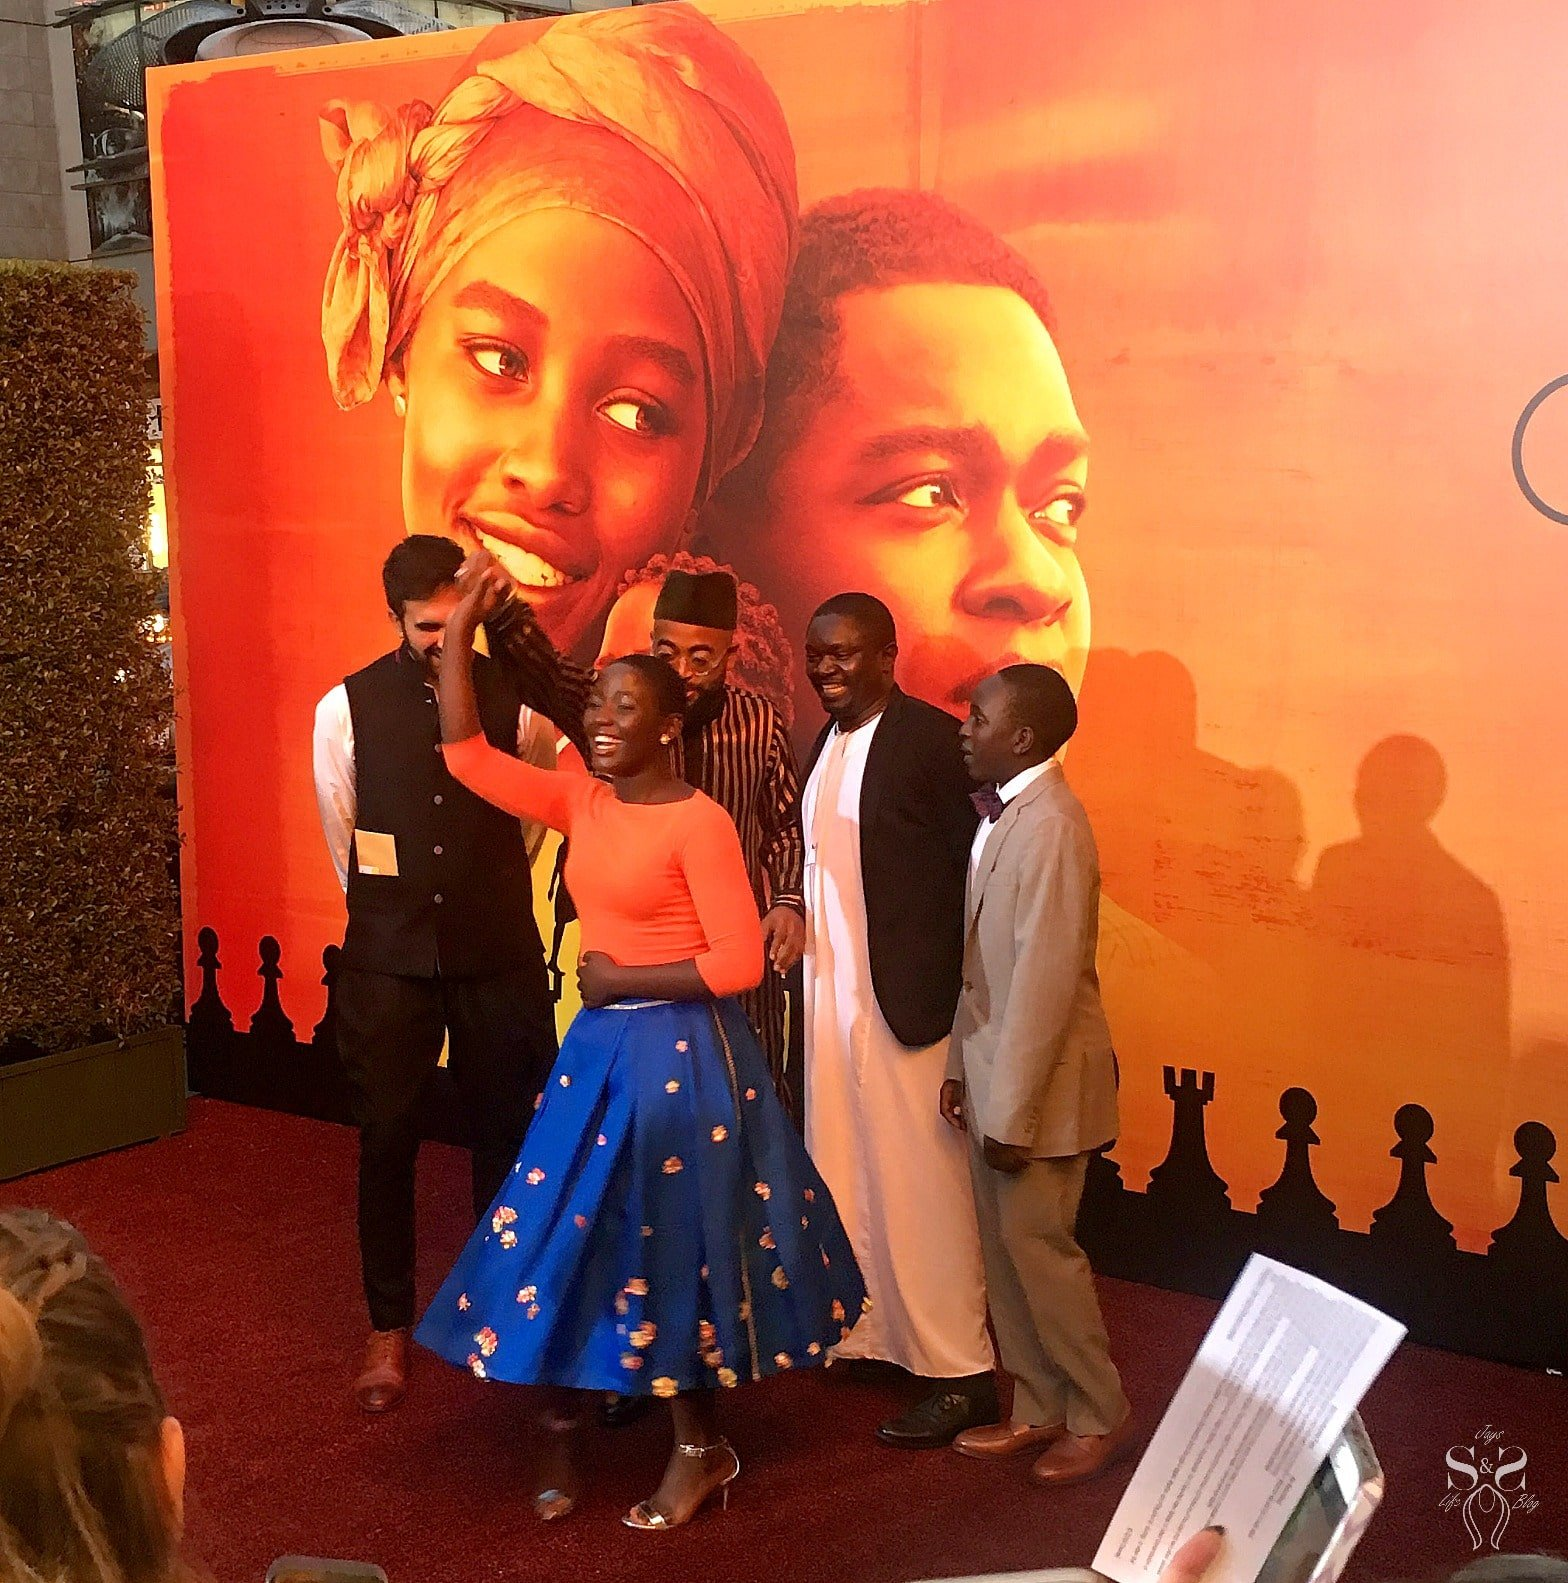 Join me as I share my experience of Walking The Red Carpet For Disney's Queen Of Katwe Premiere. I'm sharing an insider's look at what it's like to walk on the red carpet, including some after-party photos!